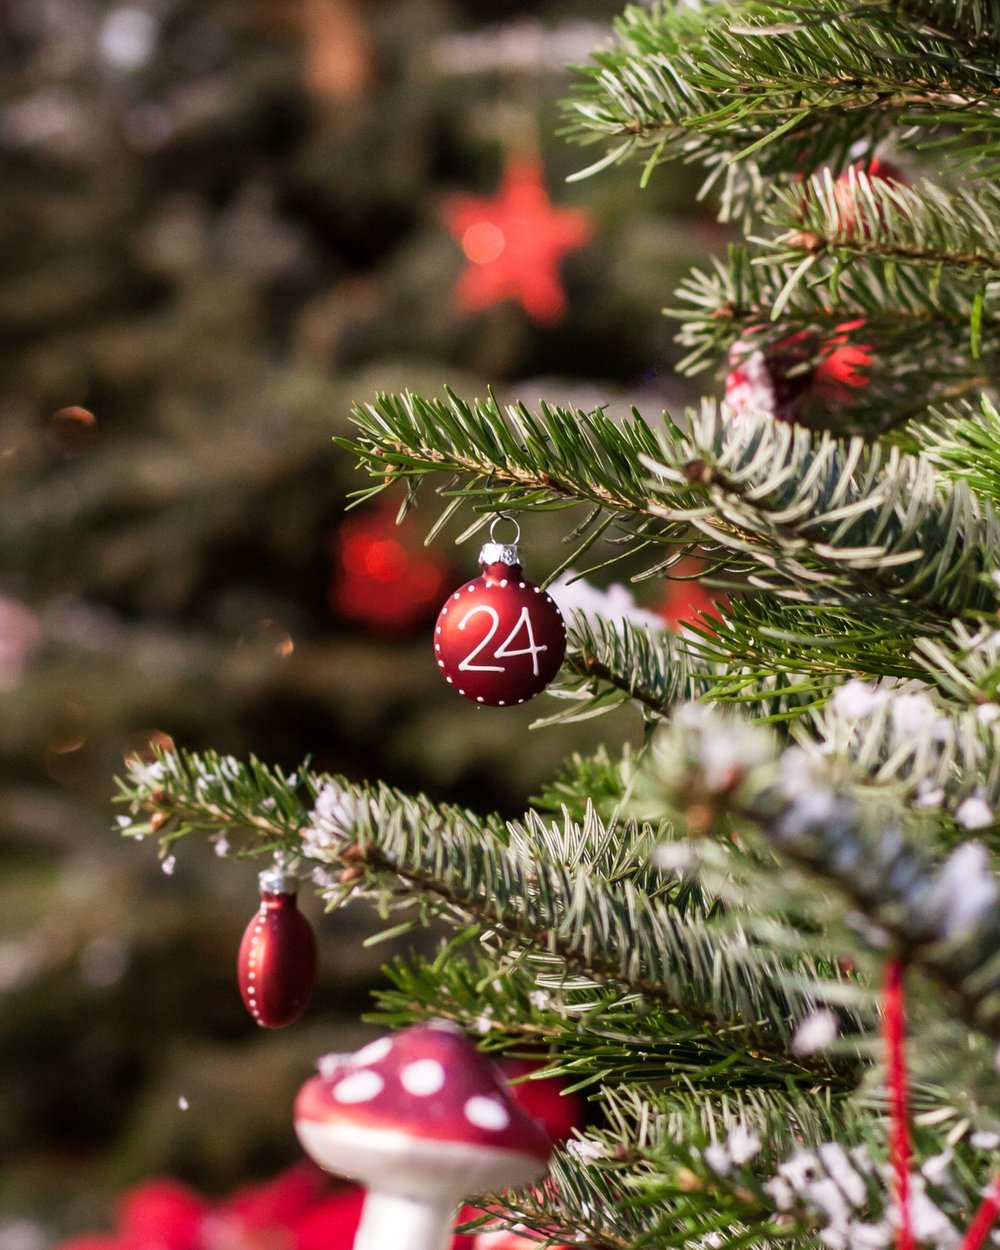 tree-branch-plant-red-evergreen-christmas-1061130-pxhere.com.jpg